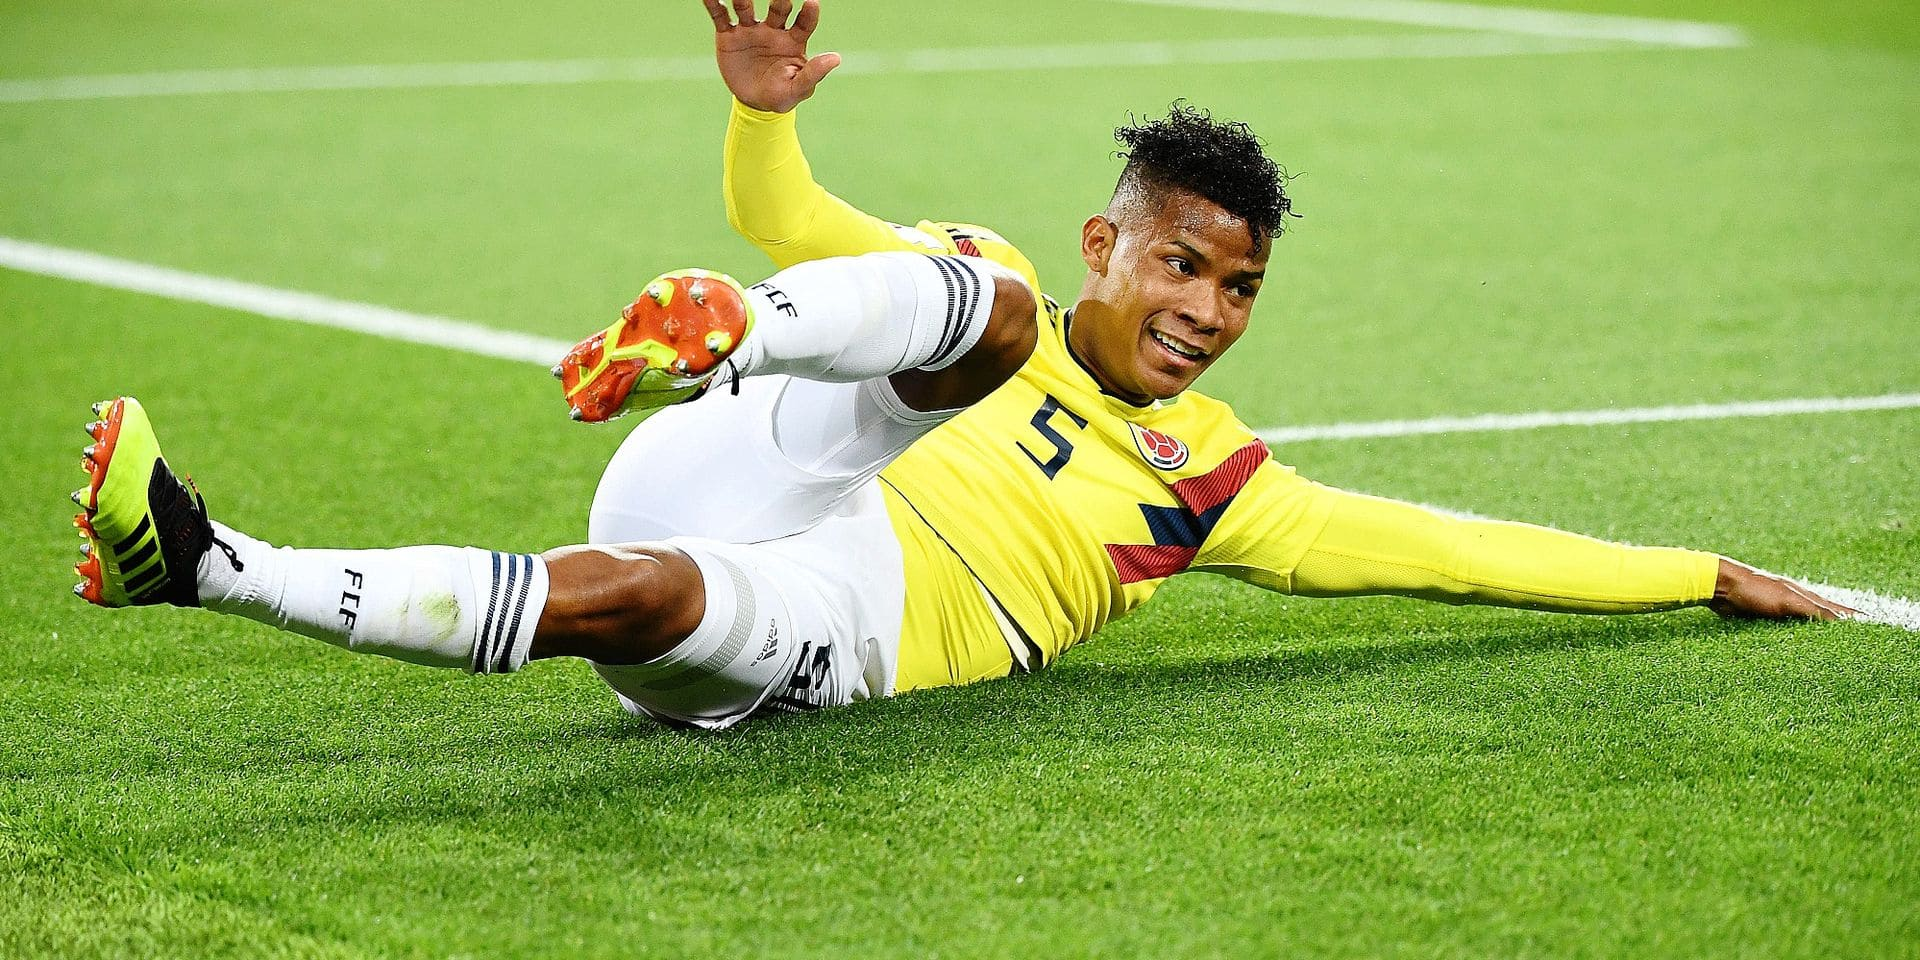 Colombia's midfielder Wilmar Barrios reacts as he falls during the Russia 2018 World Cup round of 16 football match between Colombia and England at the Spartak Stadium in Moscow on July 3, 2018. / AFP PHOTO / FRANCK FIFE / RESTRICTED TO EDITORIAL USE - NO MOBILE PUSH ALERTS/DOWNLOADS